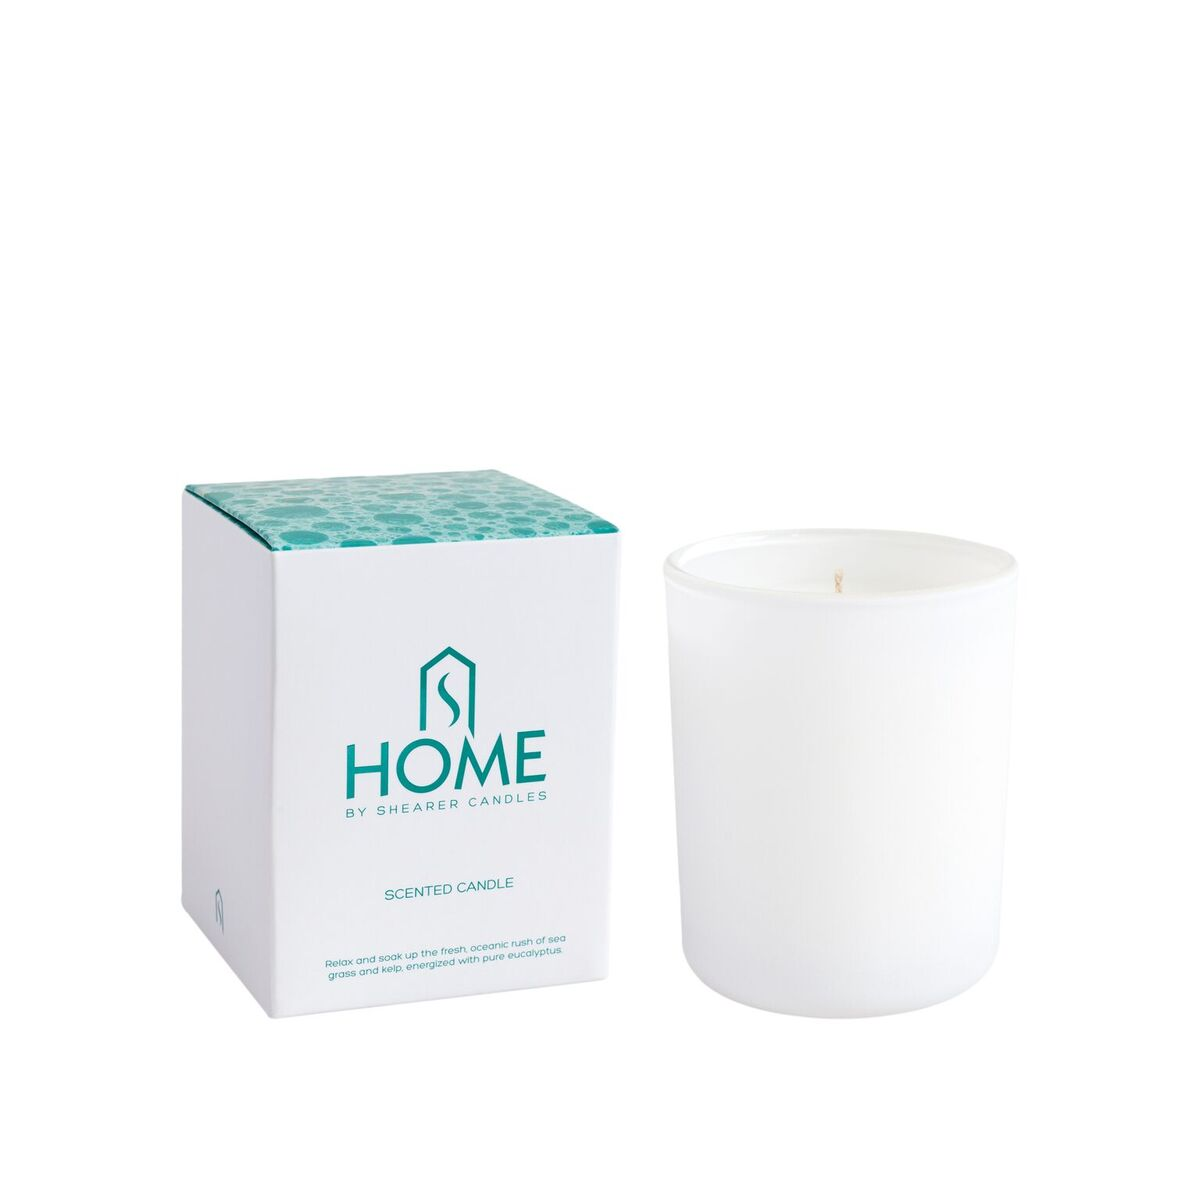 Home Glass Candle 30cl Gift Box Bathroom